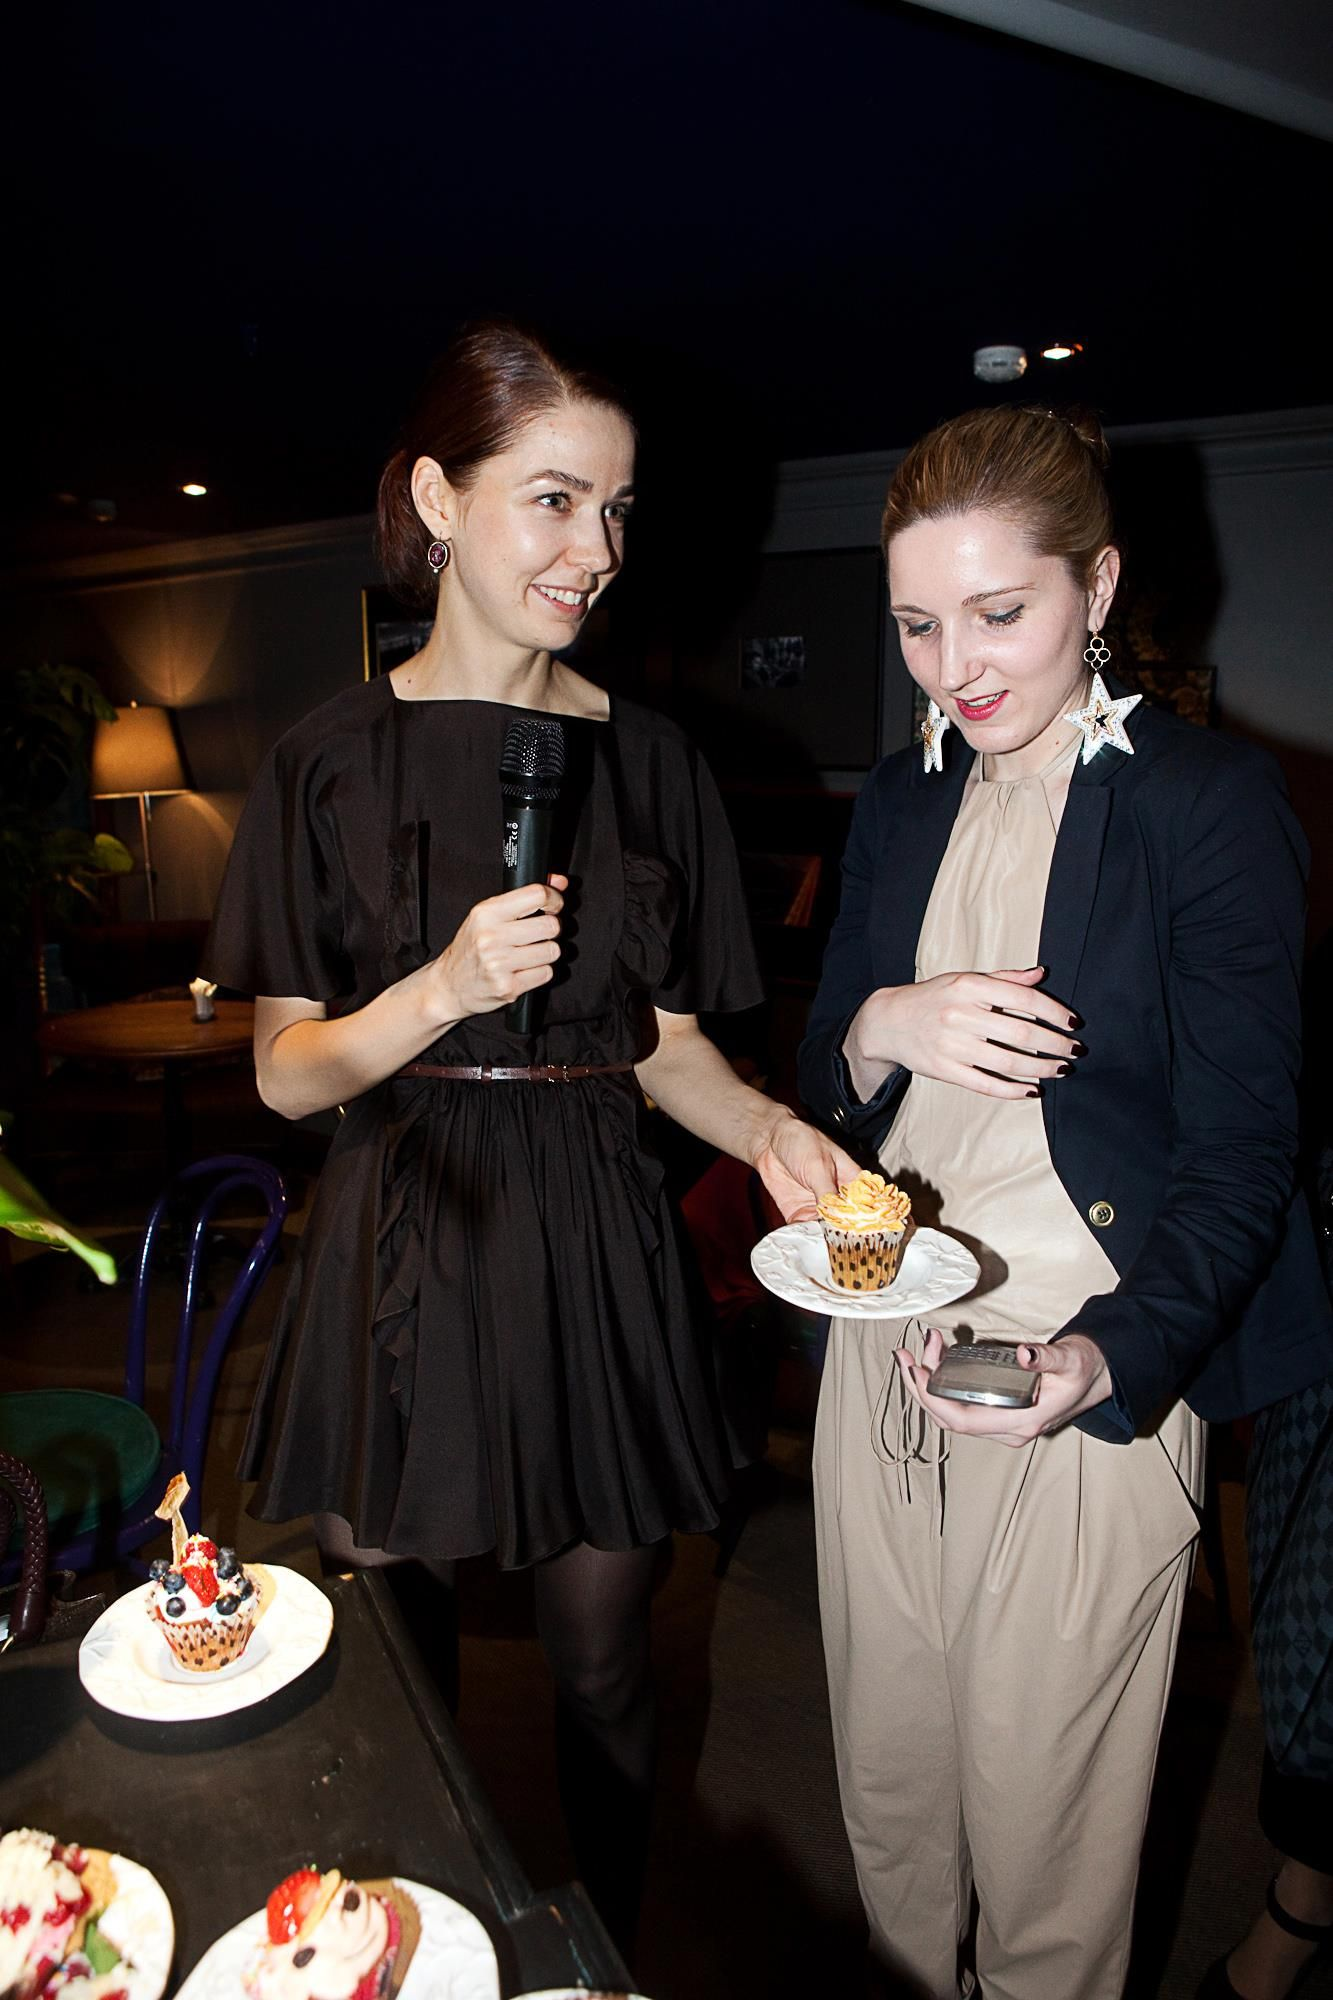 With Alena Akhmadullina at Fashion-Daily party in Cup #party #fashionblogger #blogs #fashion